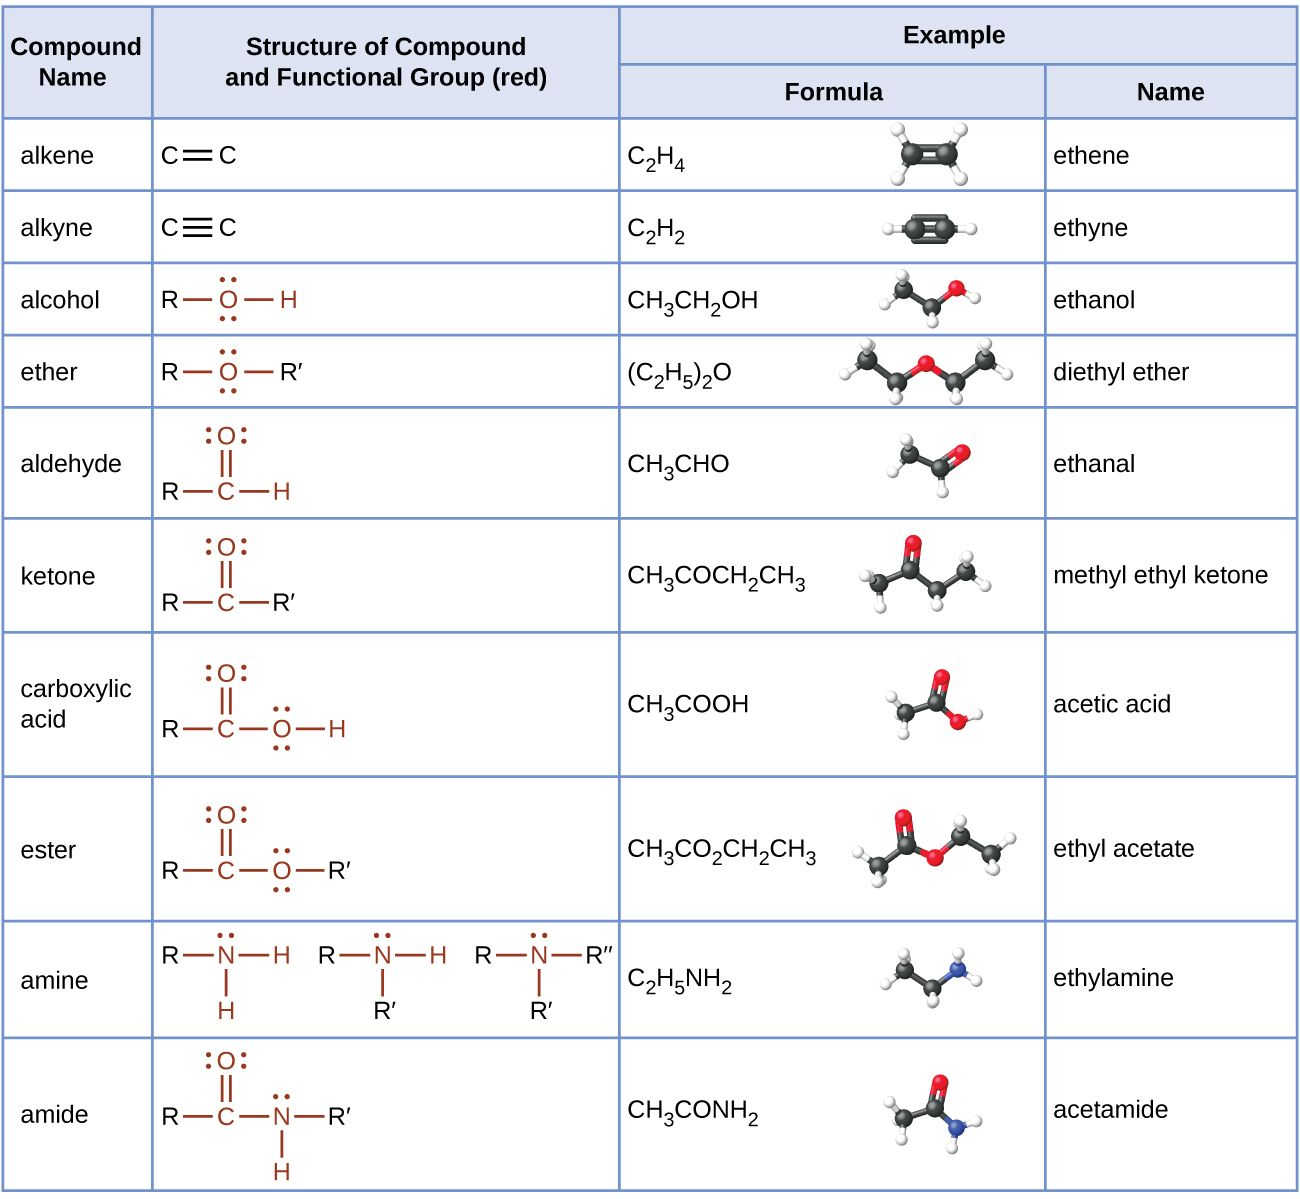 This Table Provides Compound Names Structures With